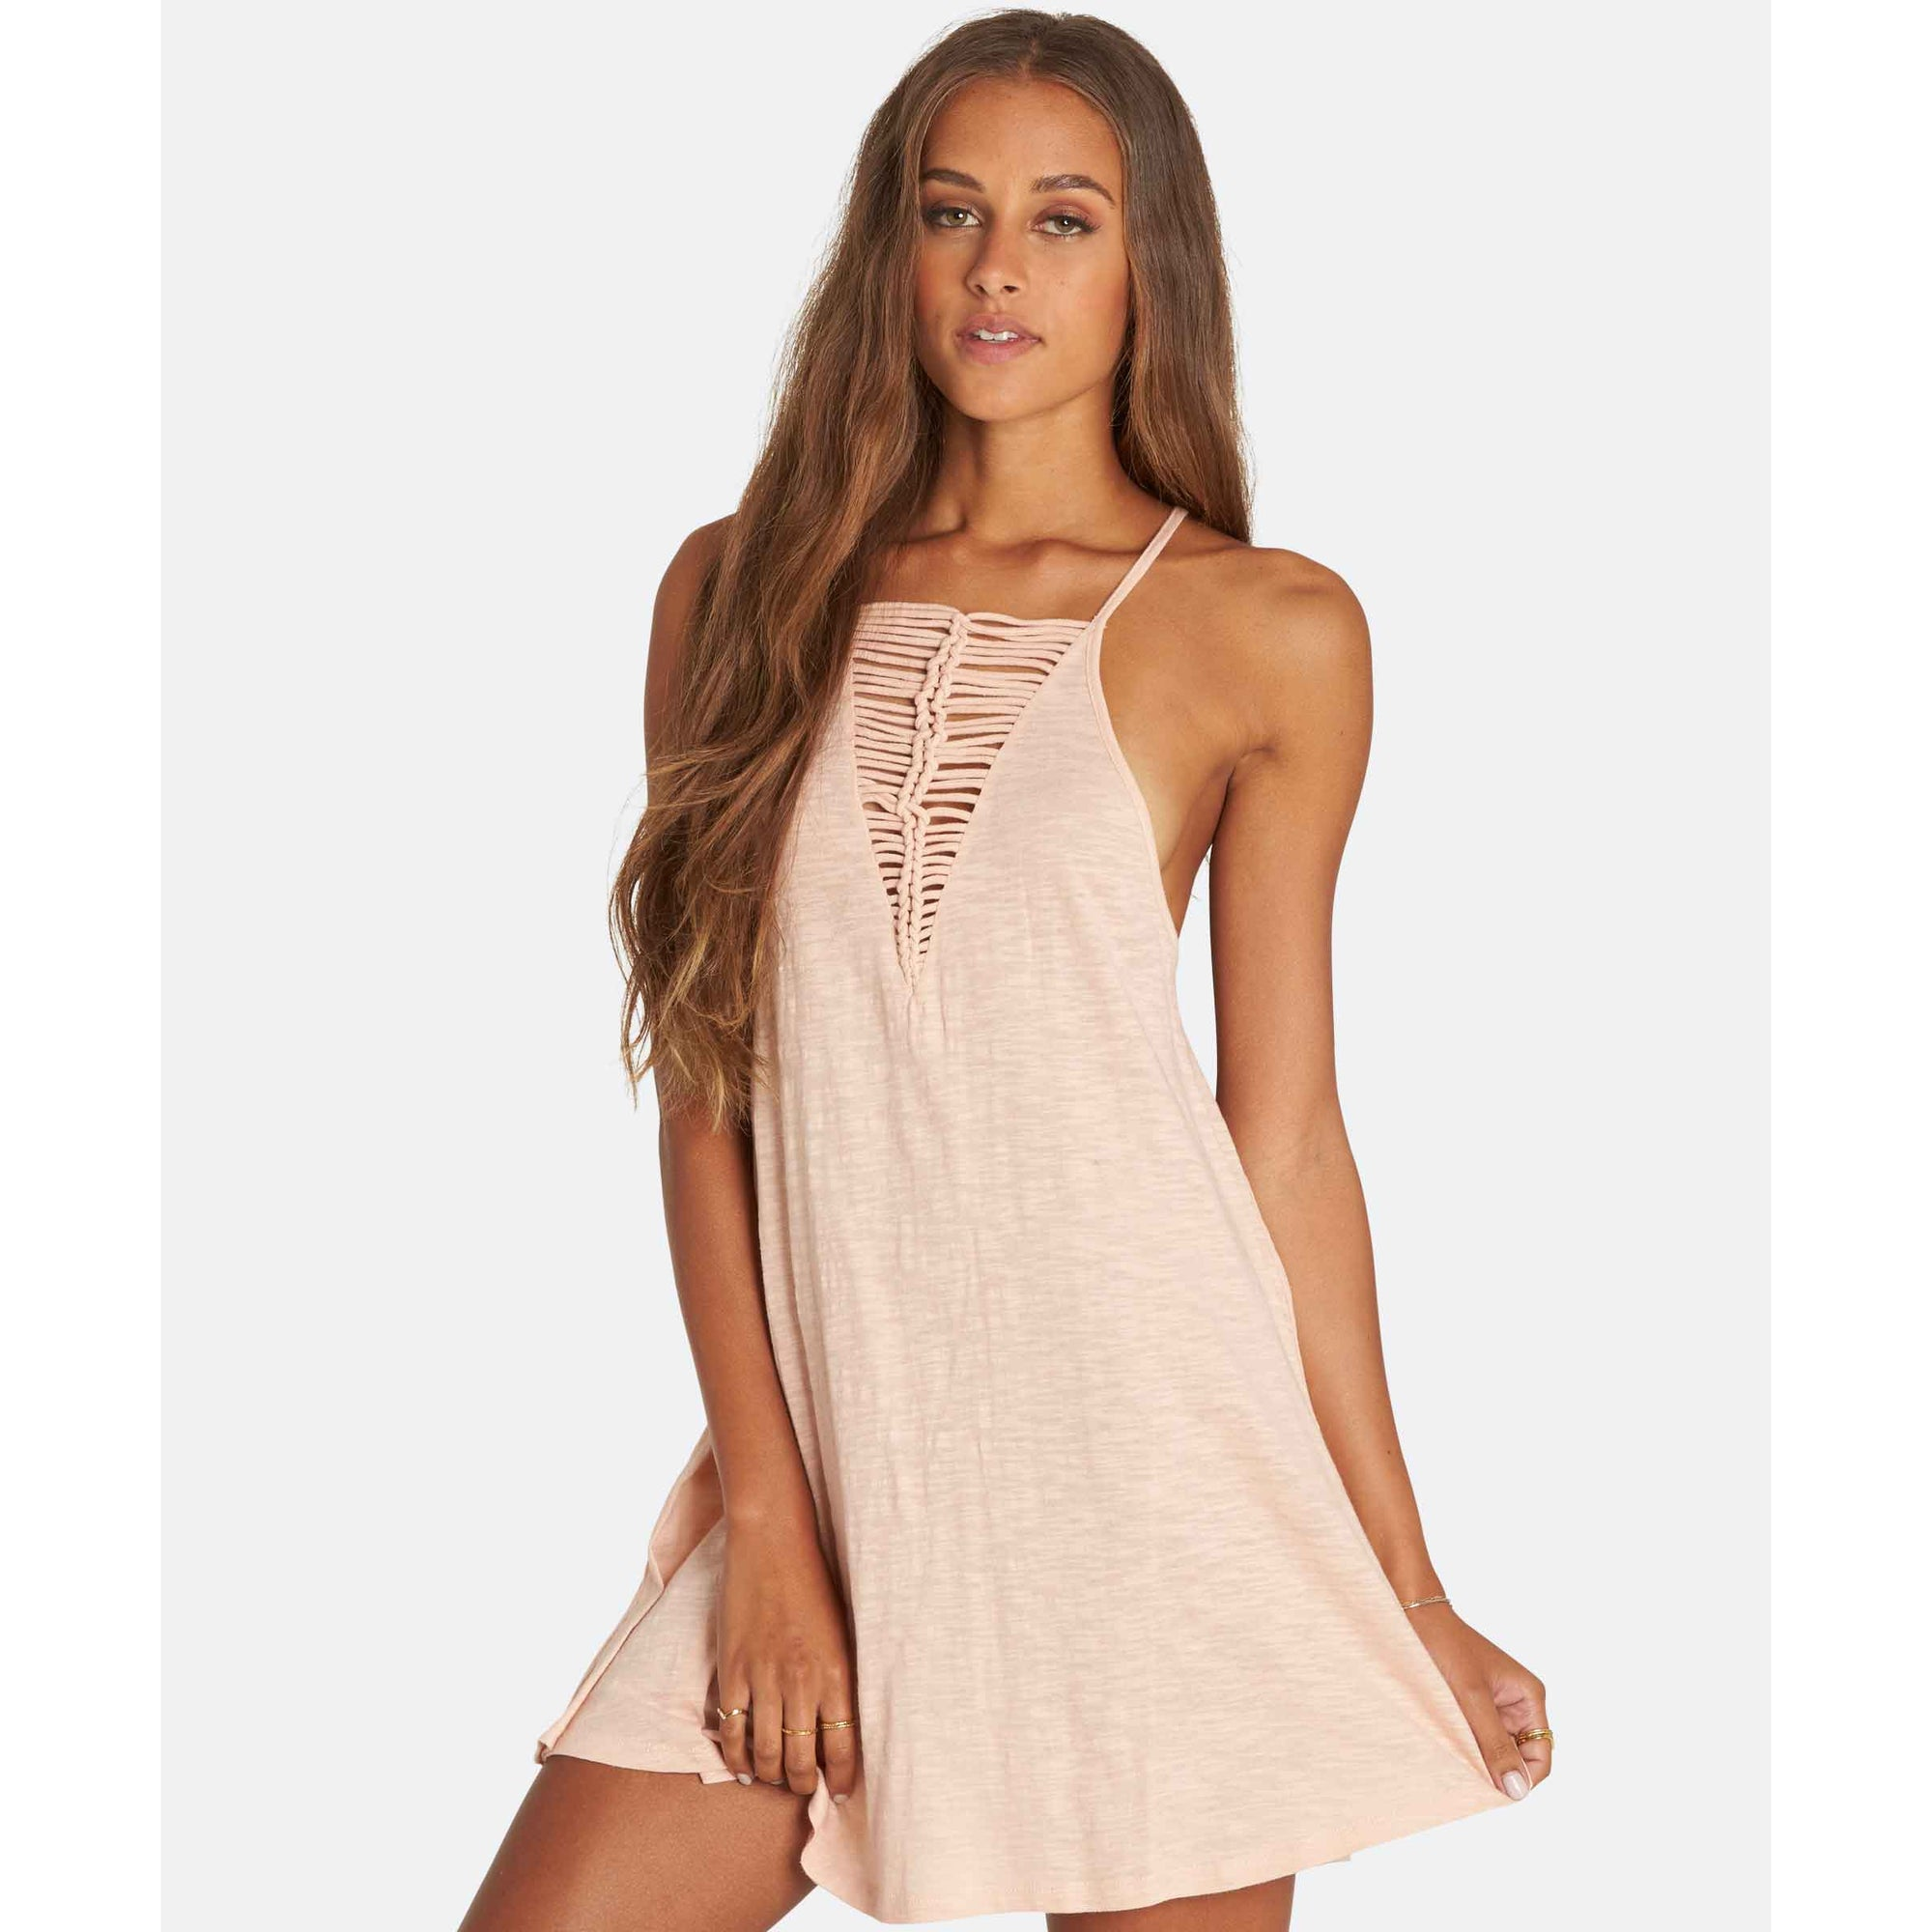 RAY ME SWING MINI DRESS BY BILLABONG